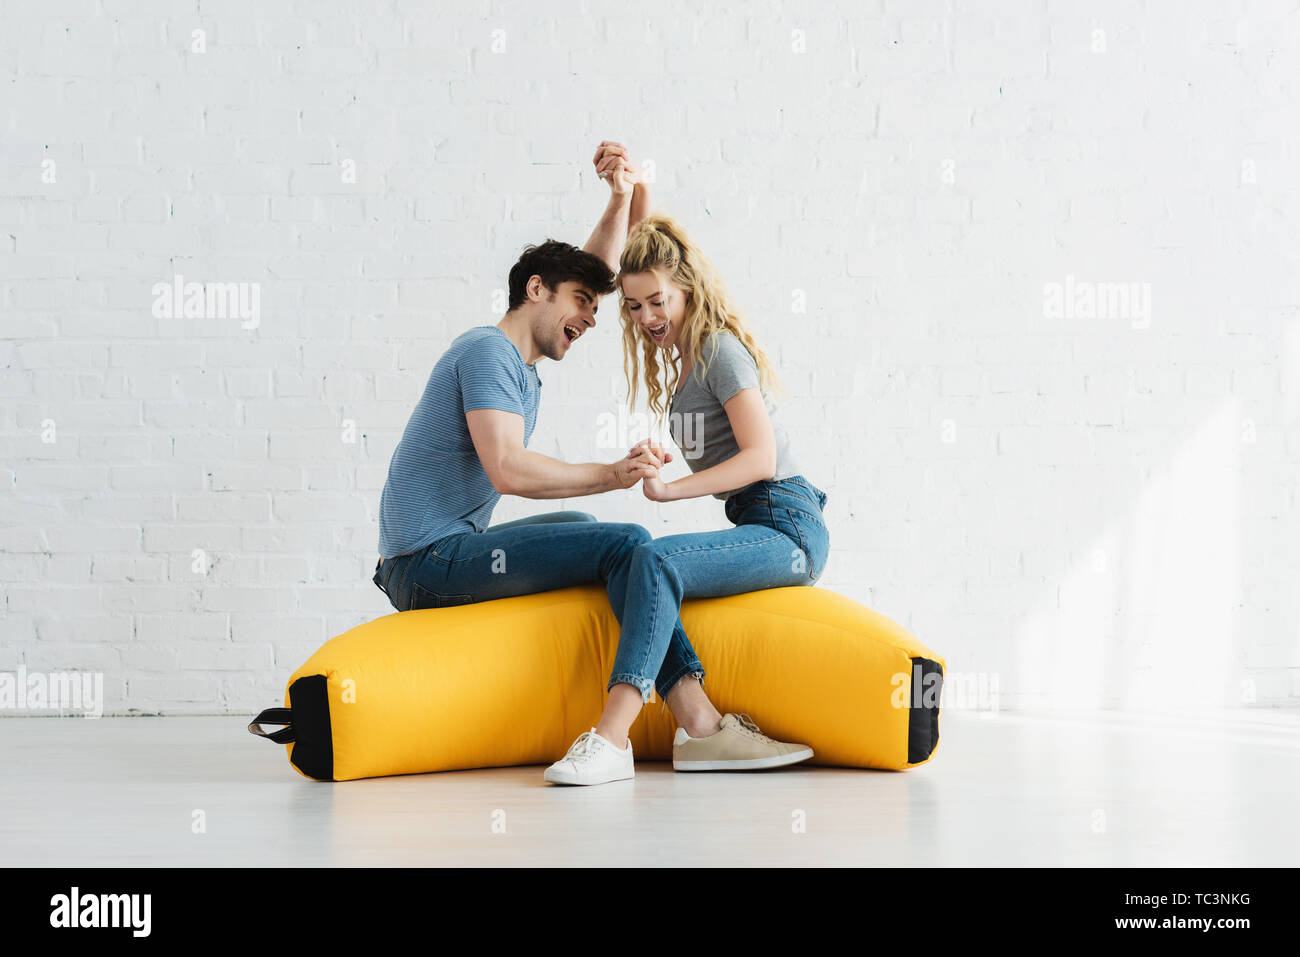 pretty blonde girl and handsome man holding hands while sitting on yellow bean bag chair - Stock Image